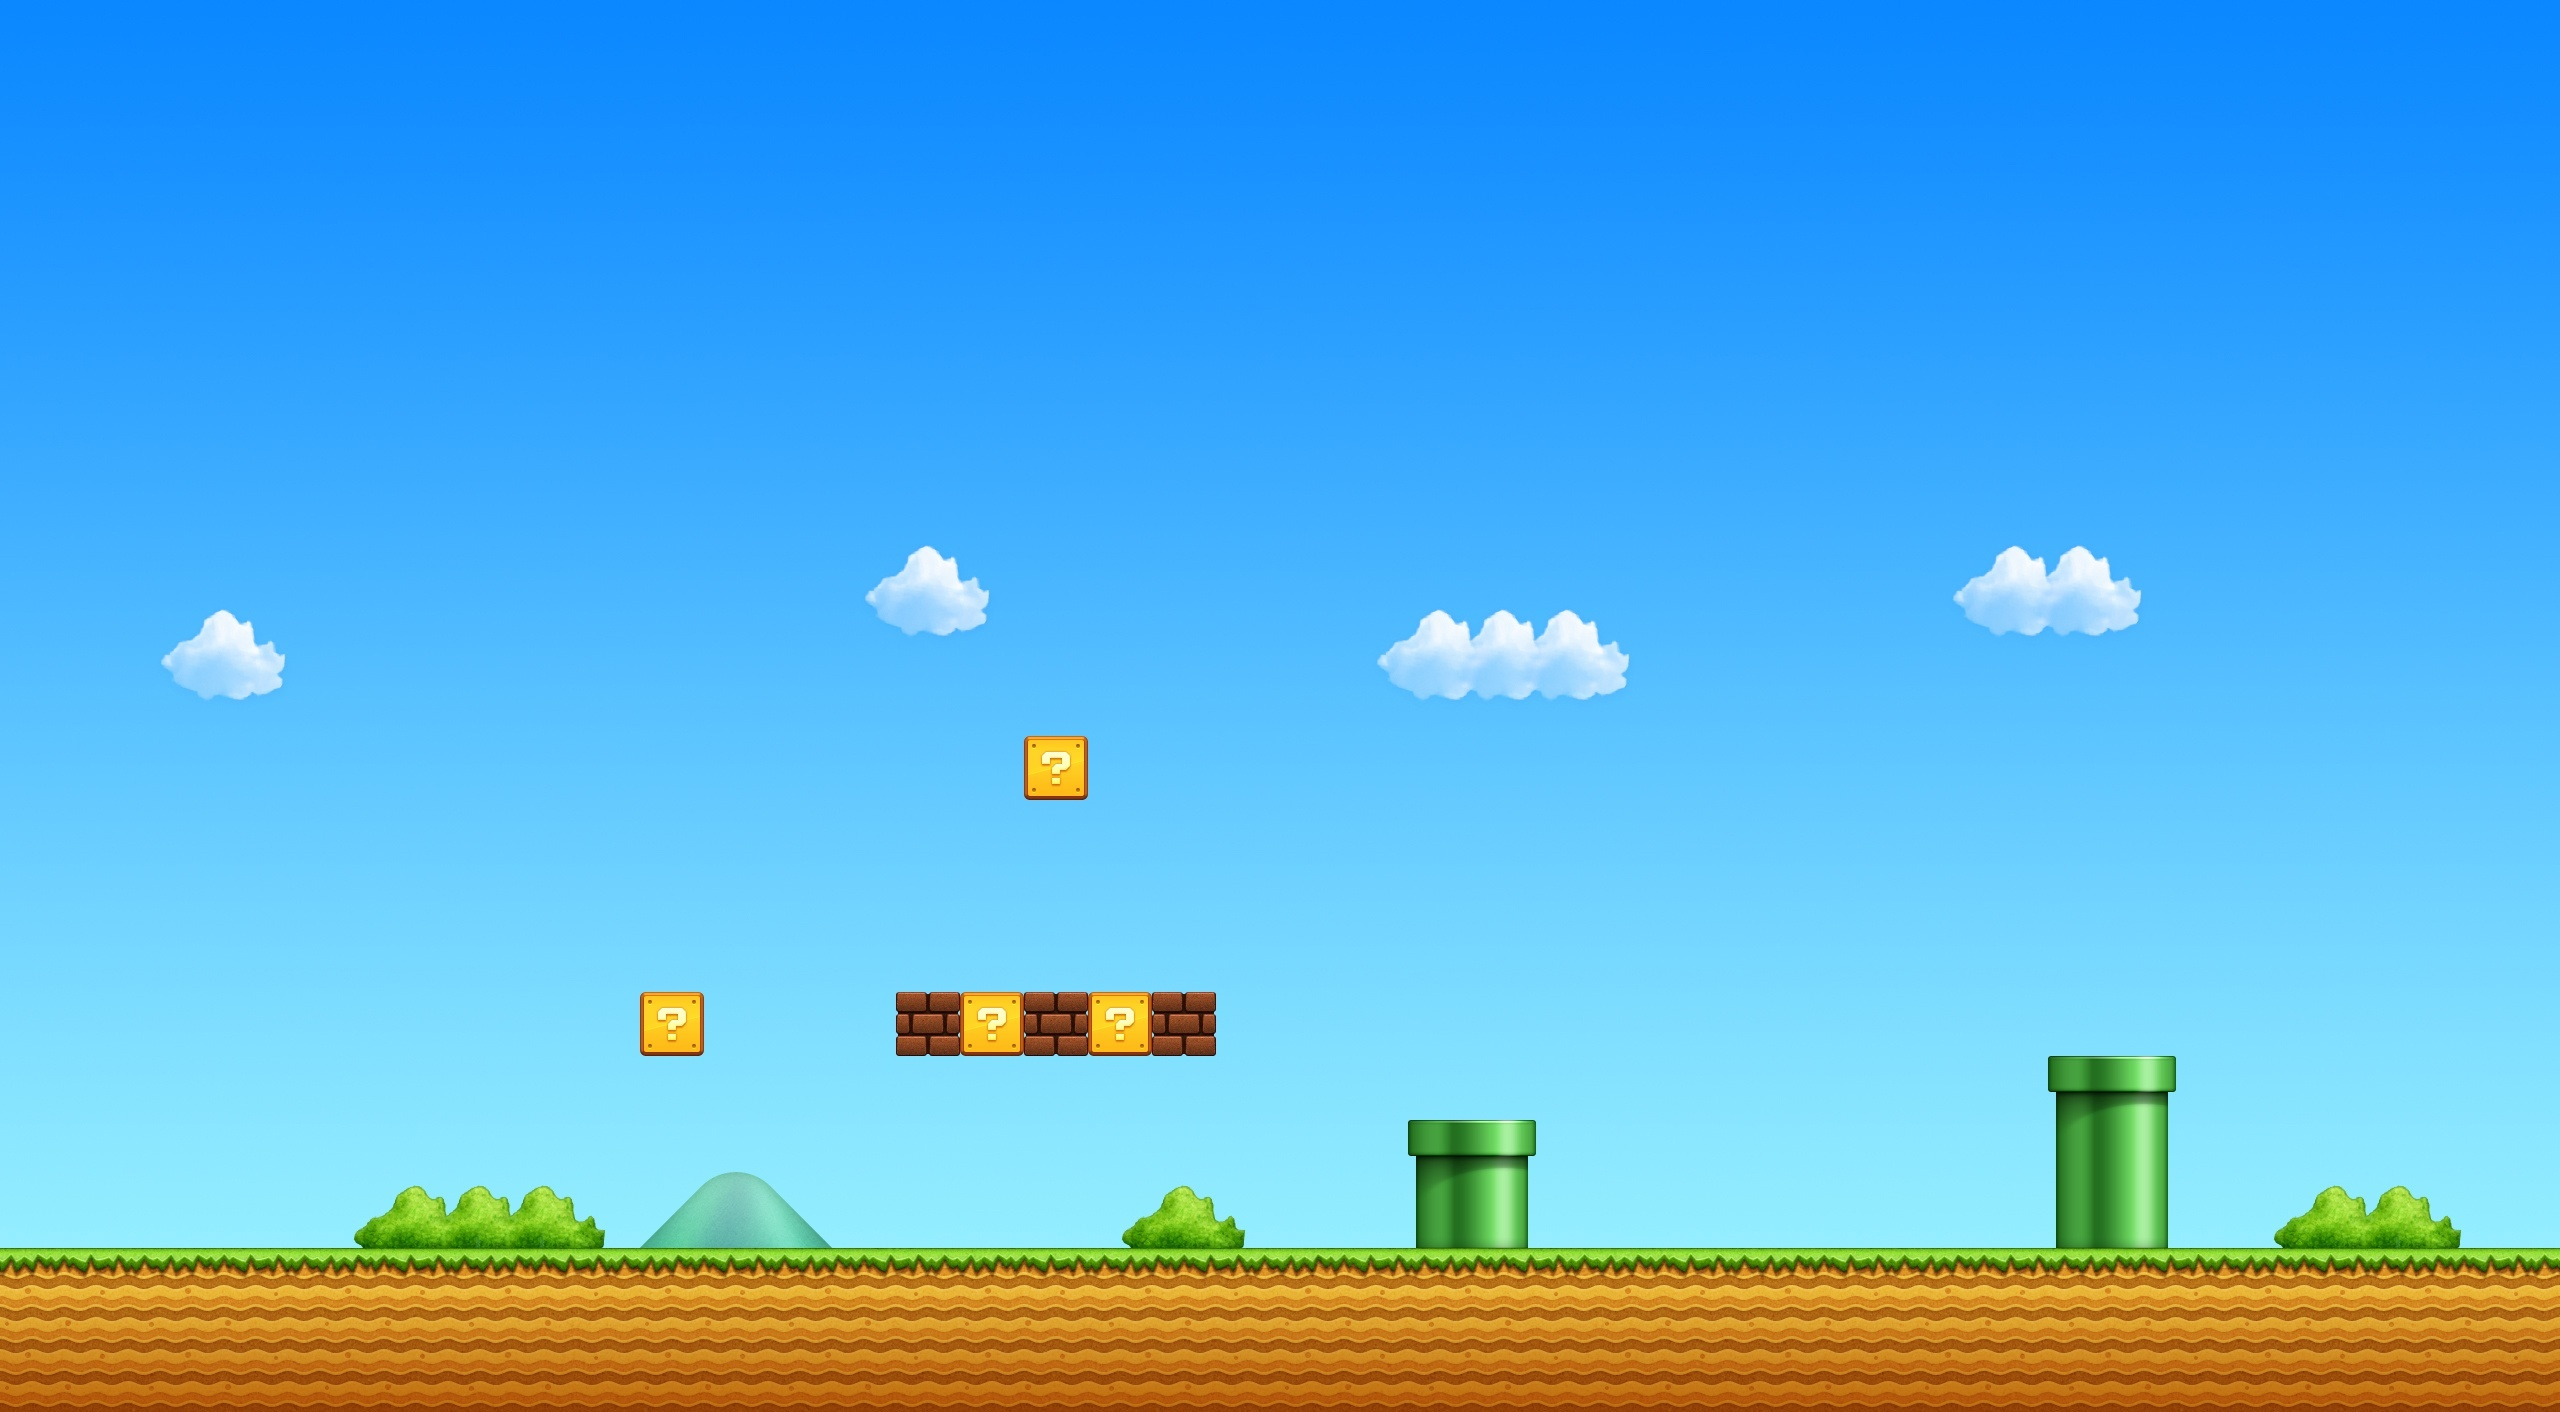 Super-mario-game-fighter-street-HD-wallpaper-pictures